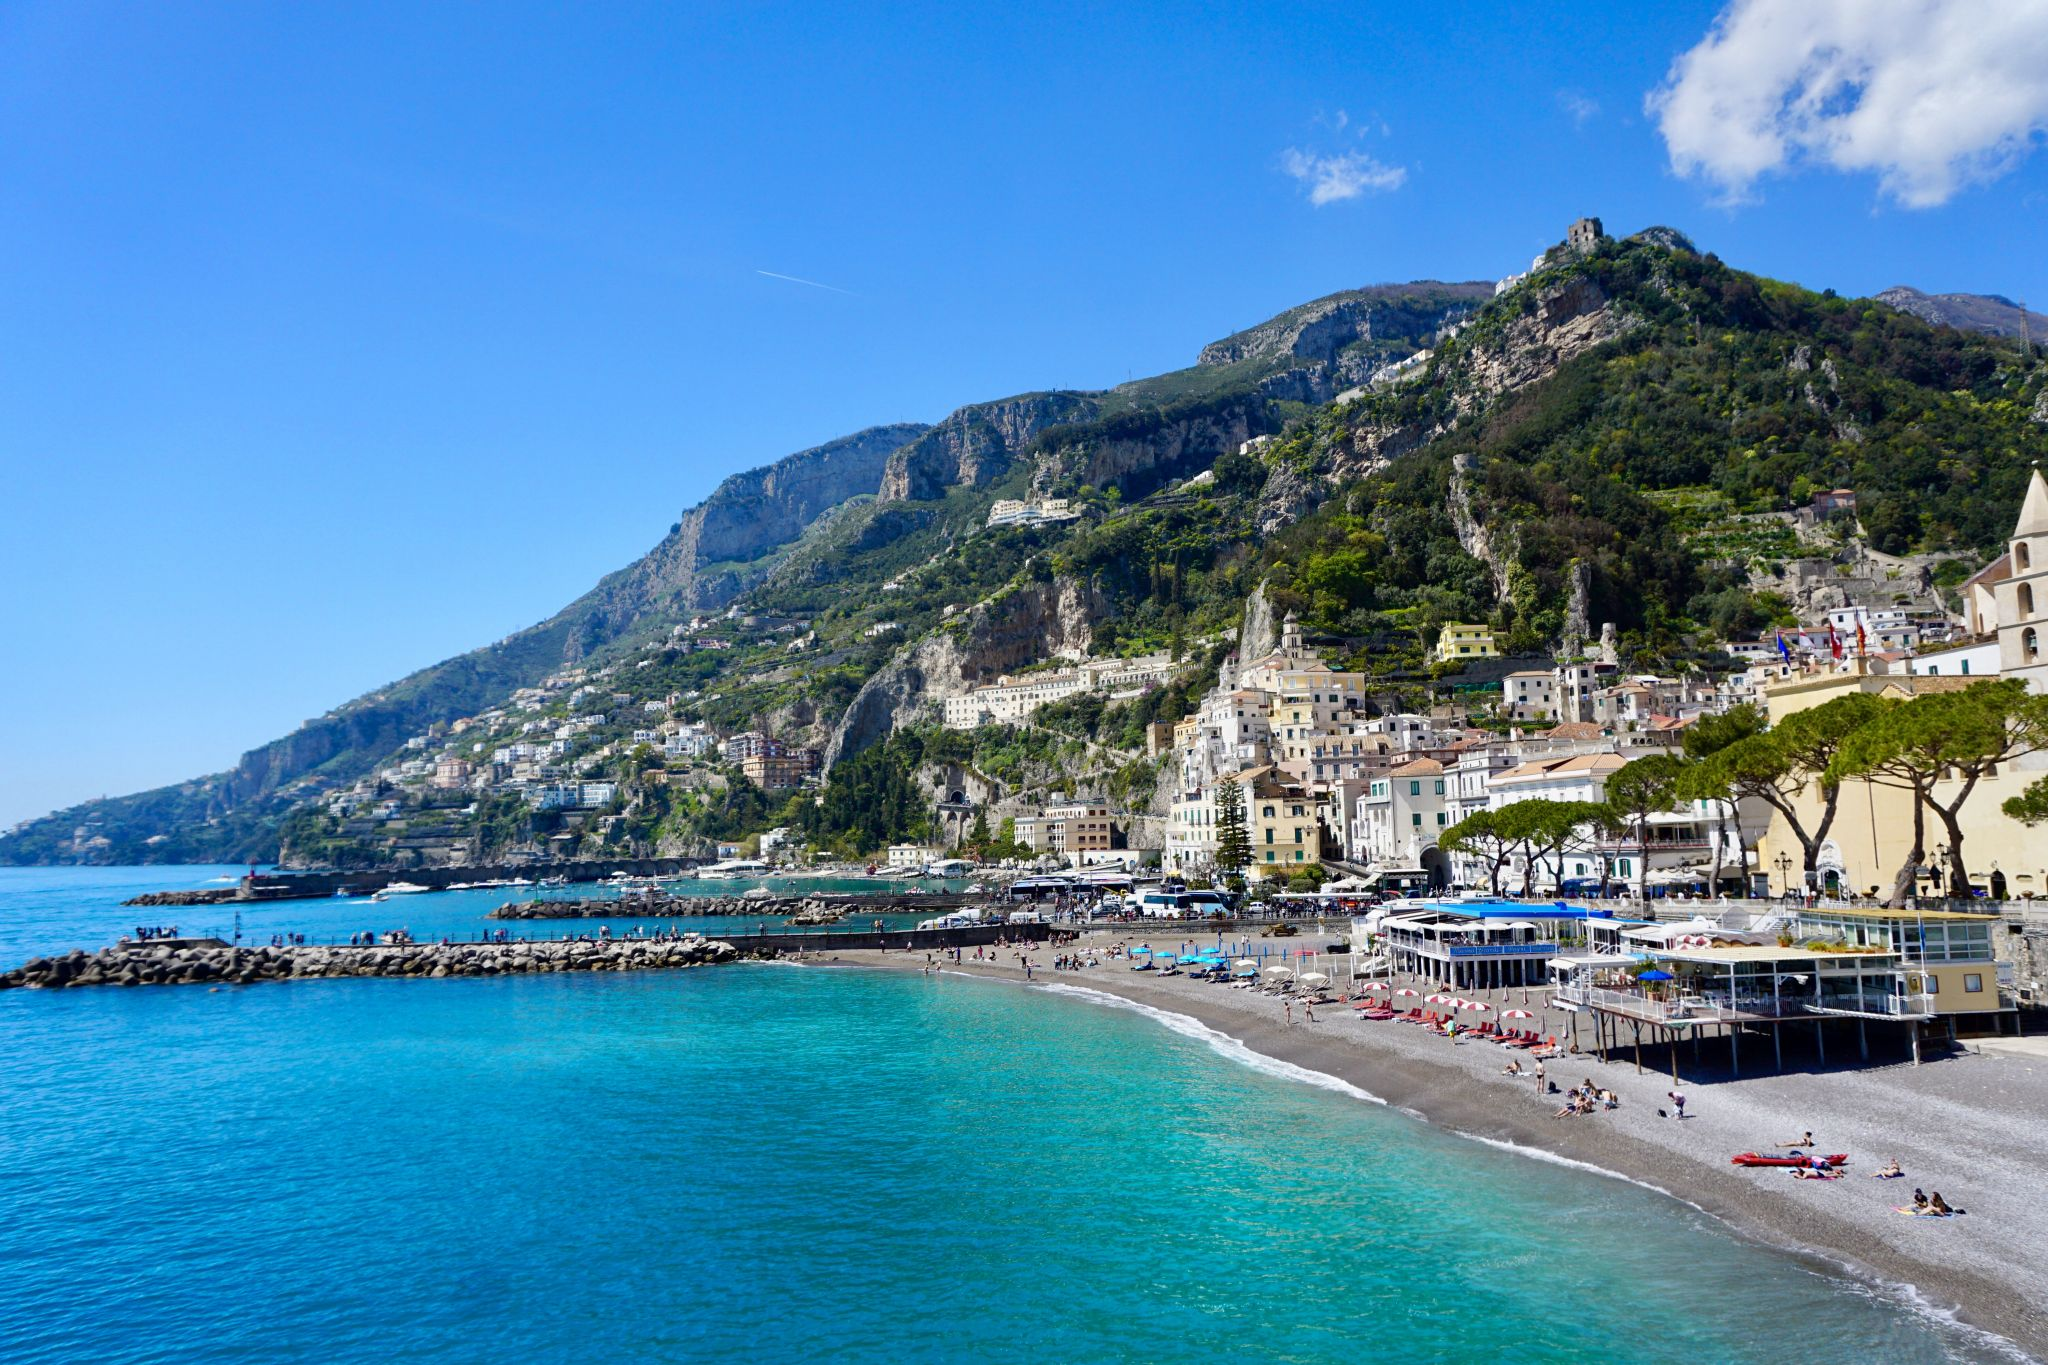 The Amalfi coast is beautiful